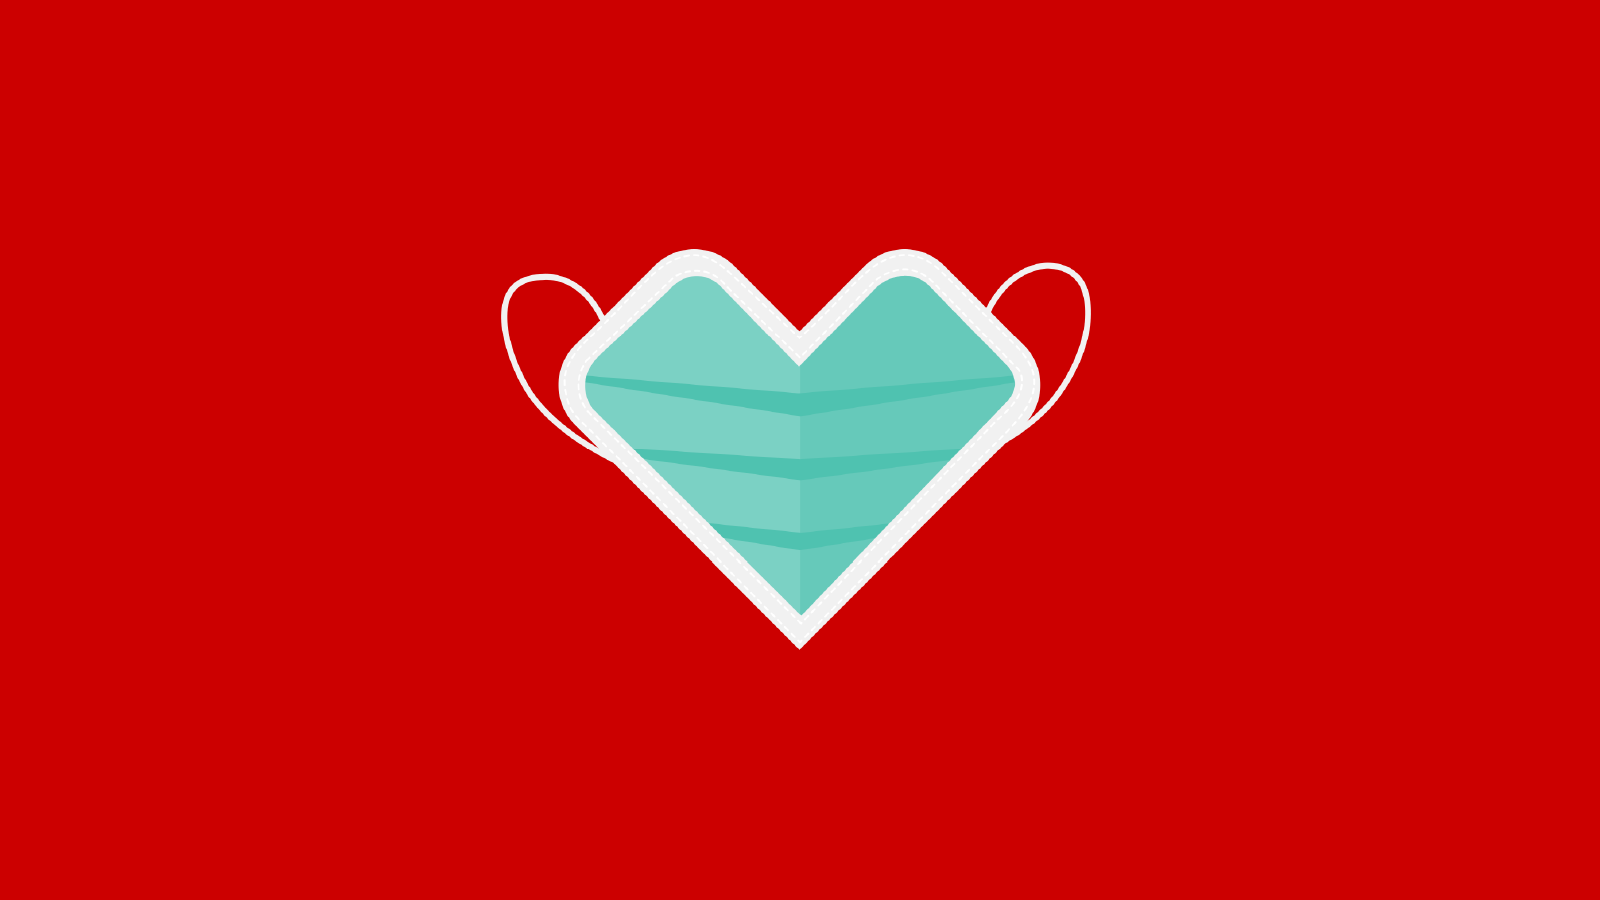 A medical face mask illustration in the shape of a CVS Health heart on a red background.